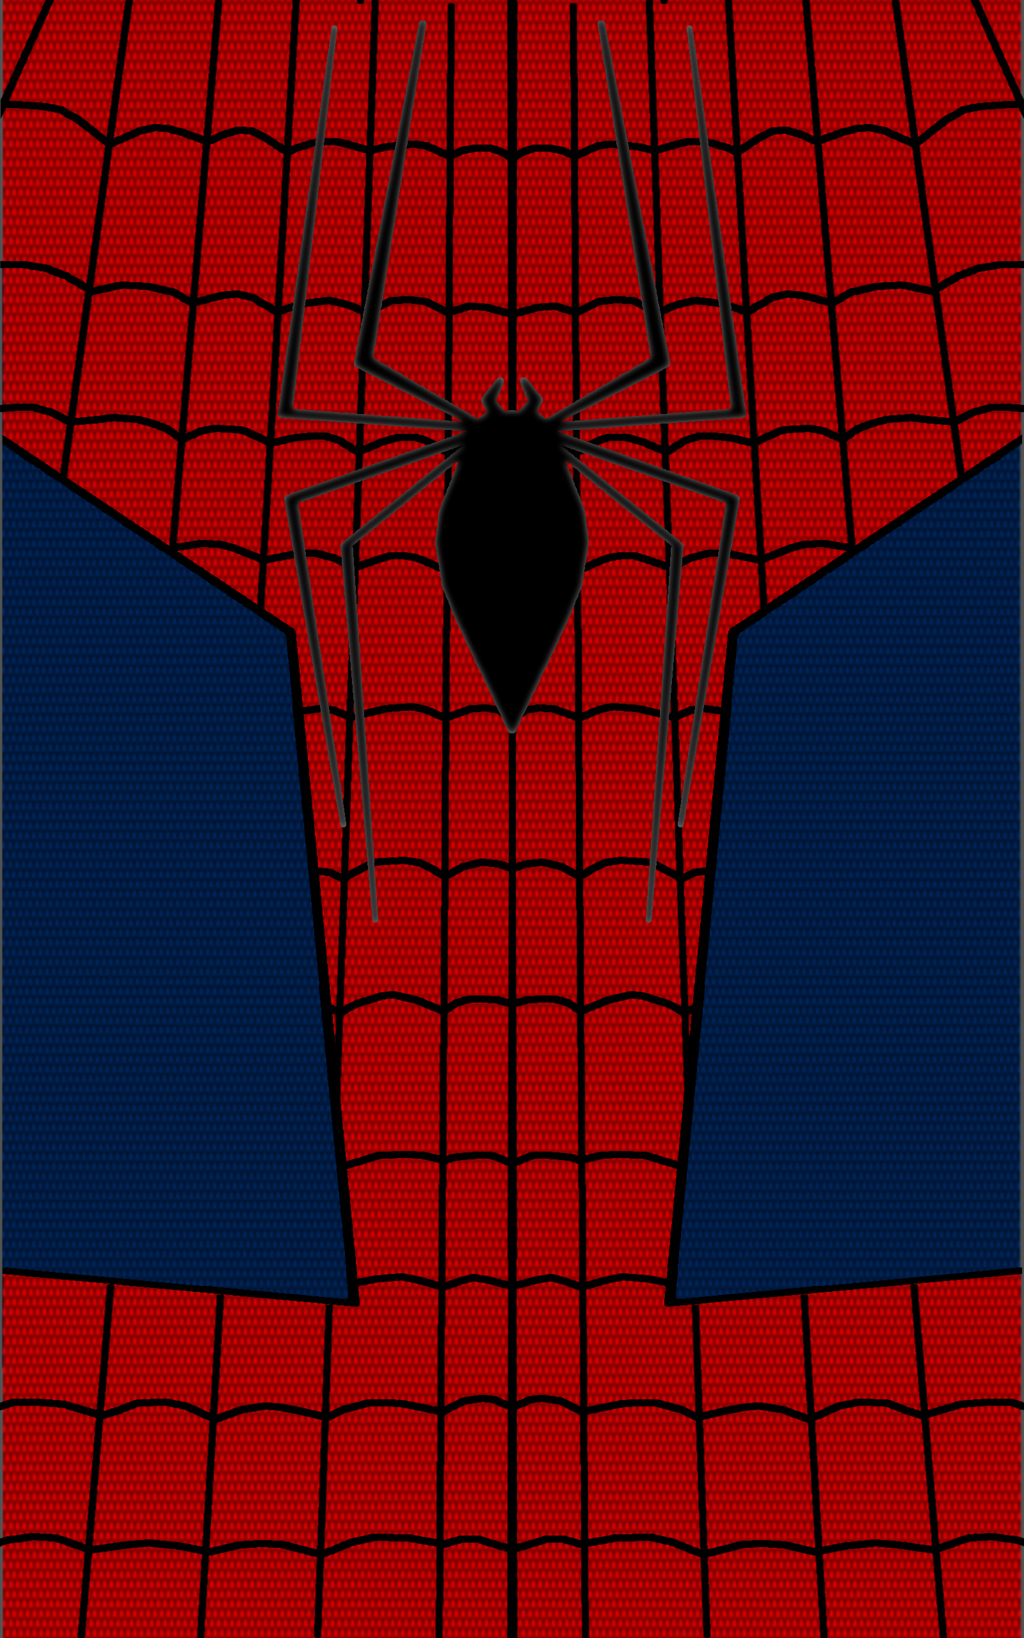 Spiderman Web Template New Spiderman Web Stencil